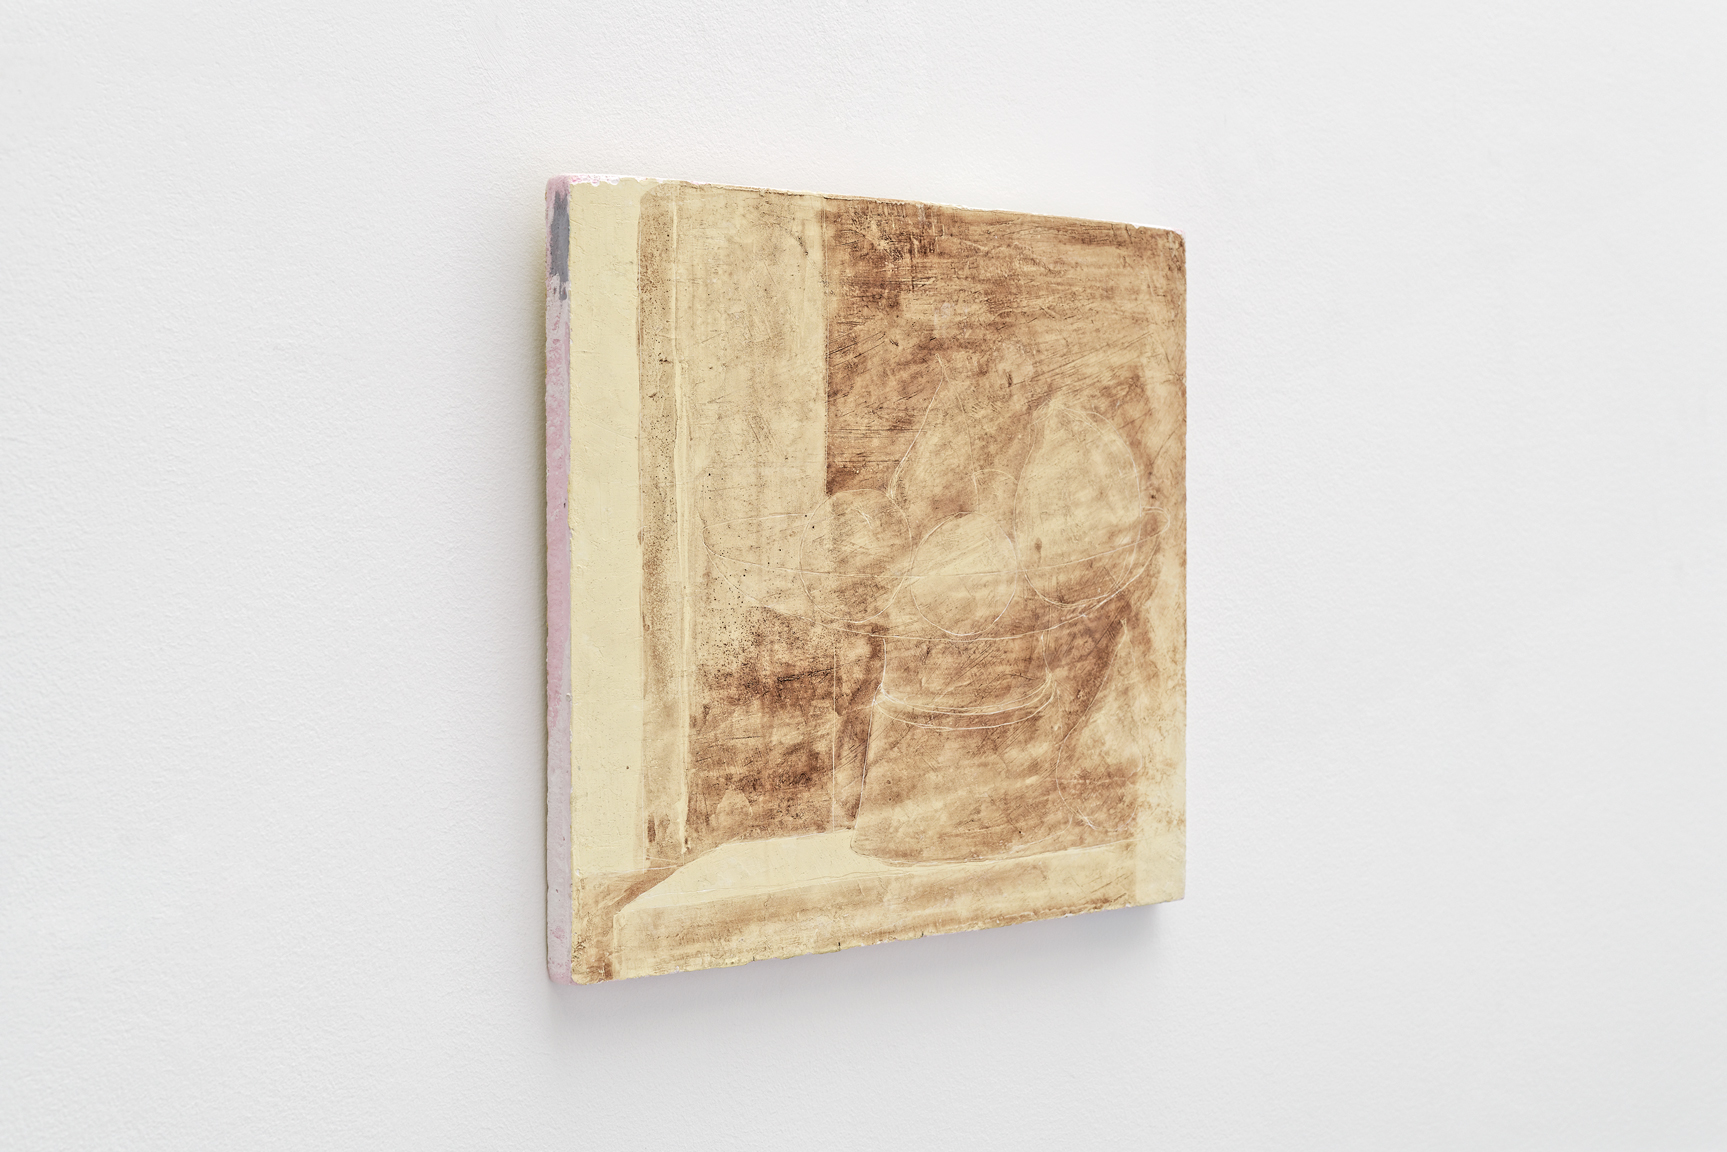 Fruitière,  Sorin Câmpan, 2019, acrylic and gesso on board, 38,5 x 36 cm 